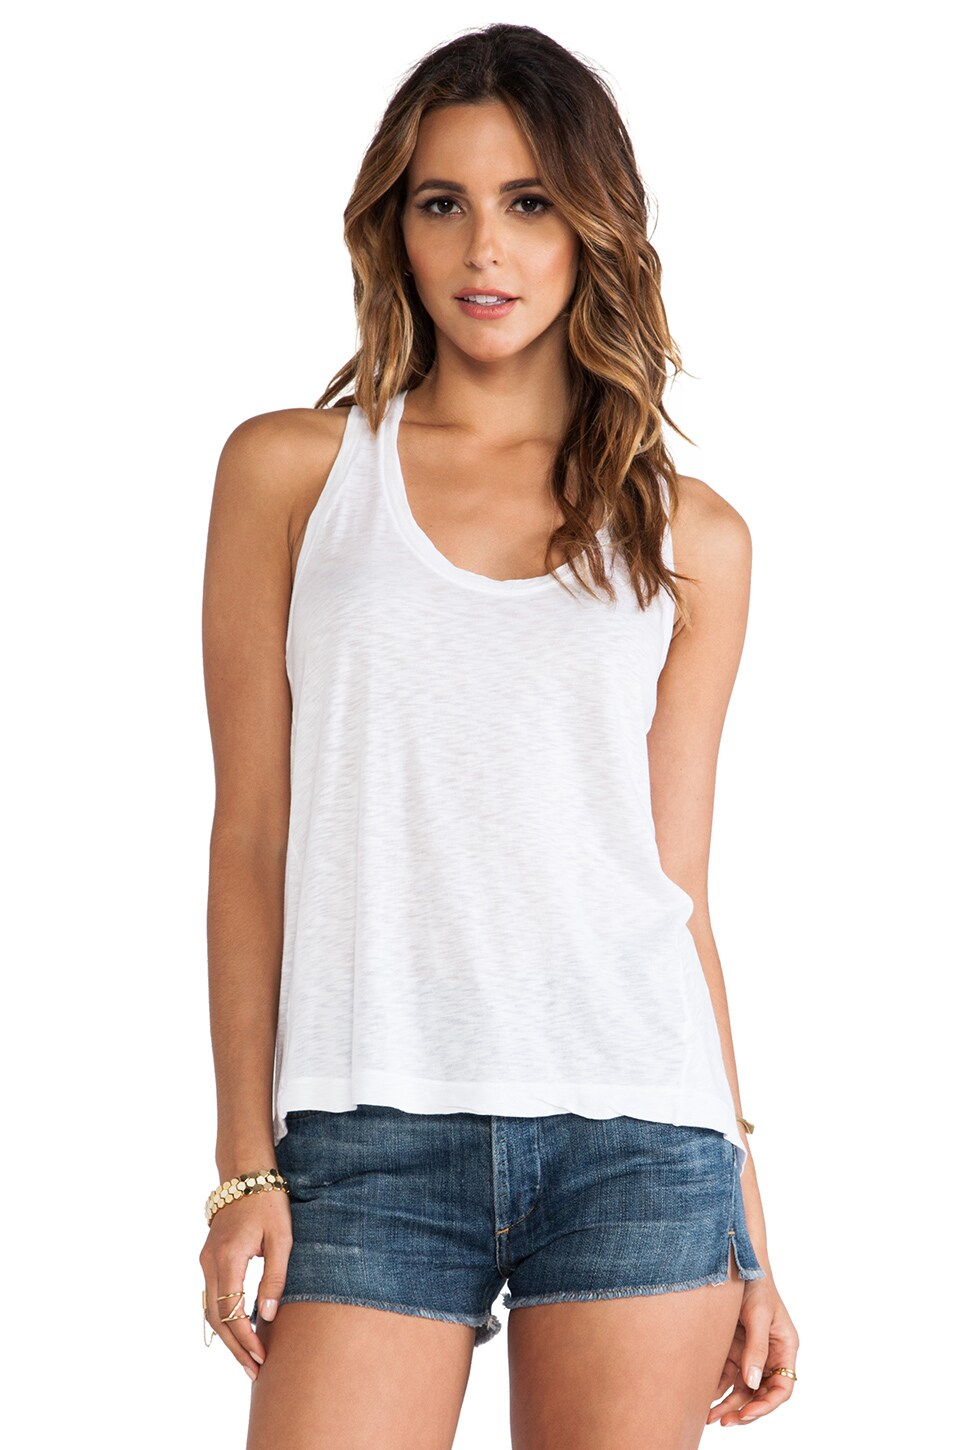 Splendid Slub Tank in White